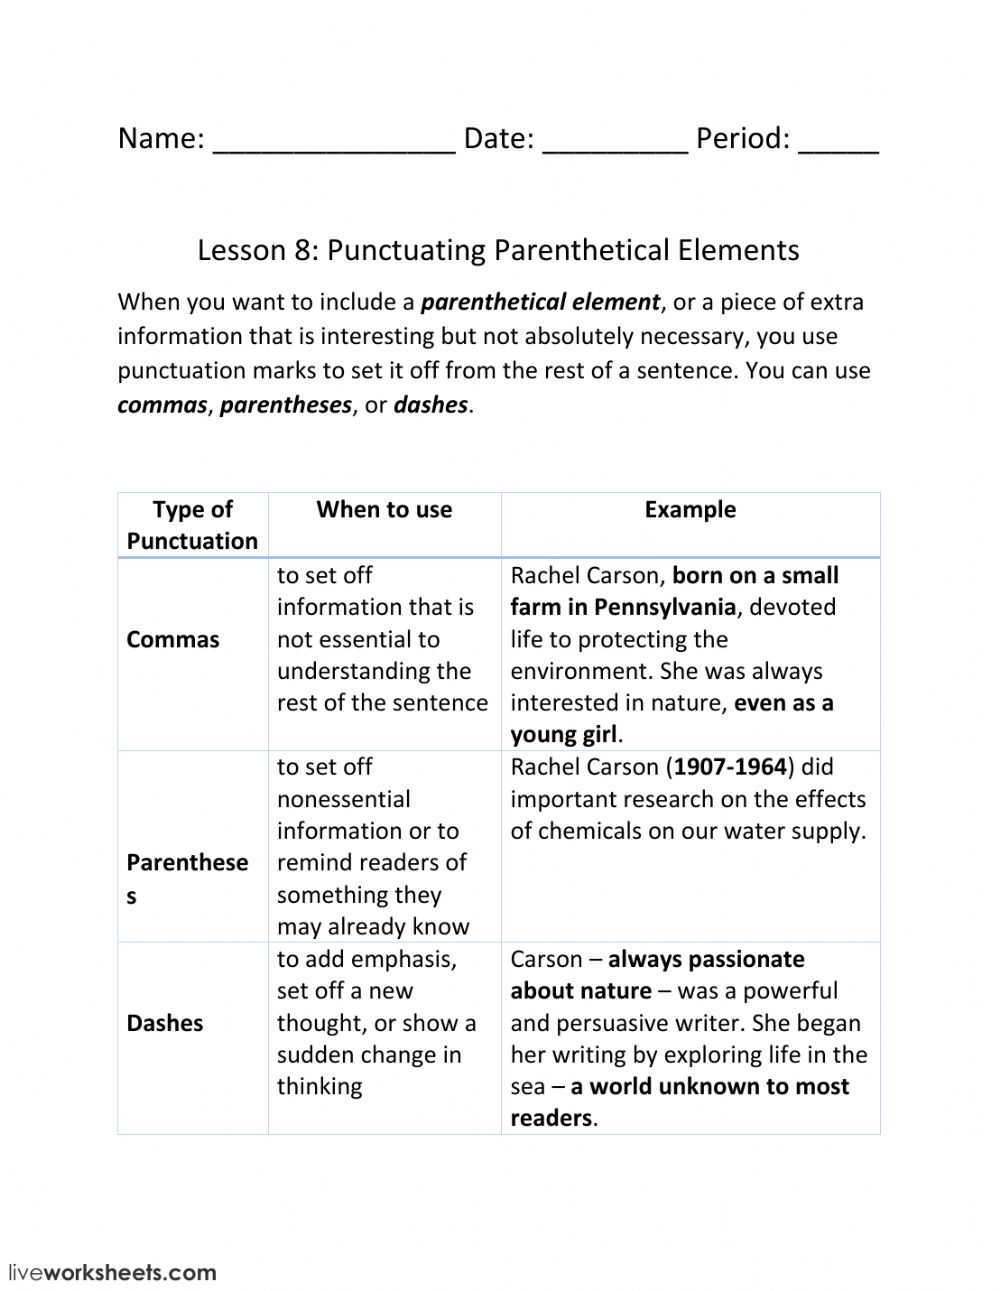 hight resolution of Lesson 8: Punctuating Parenthetical Elements worksheet